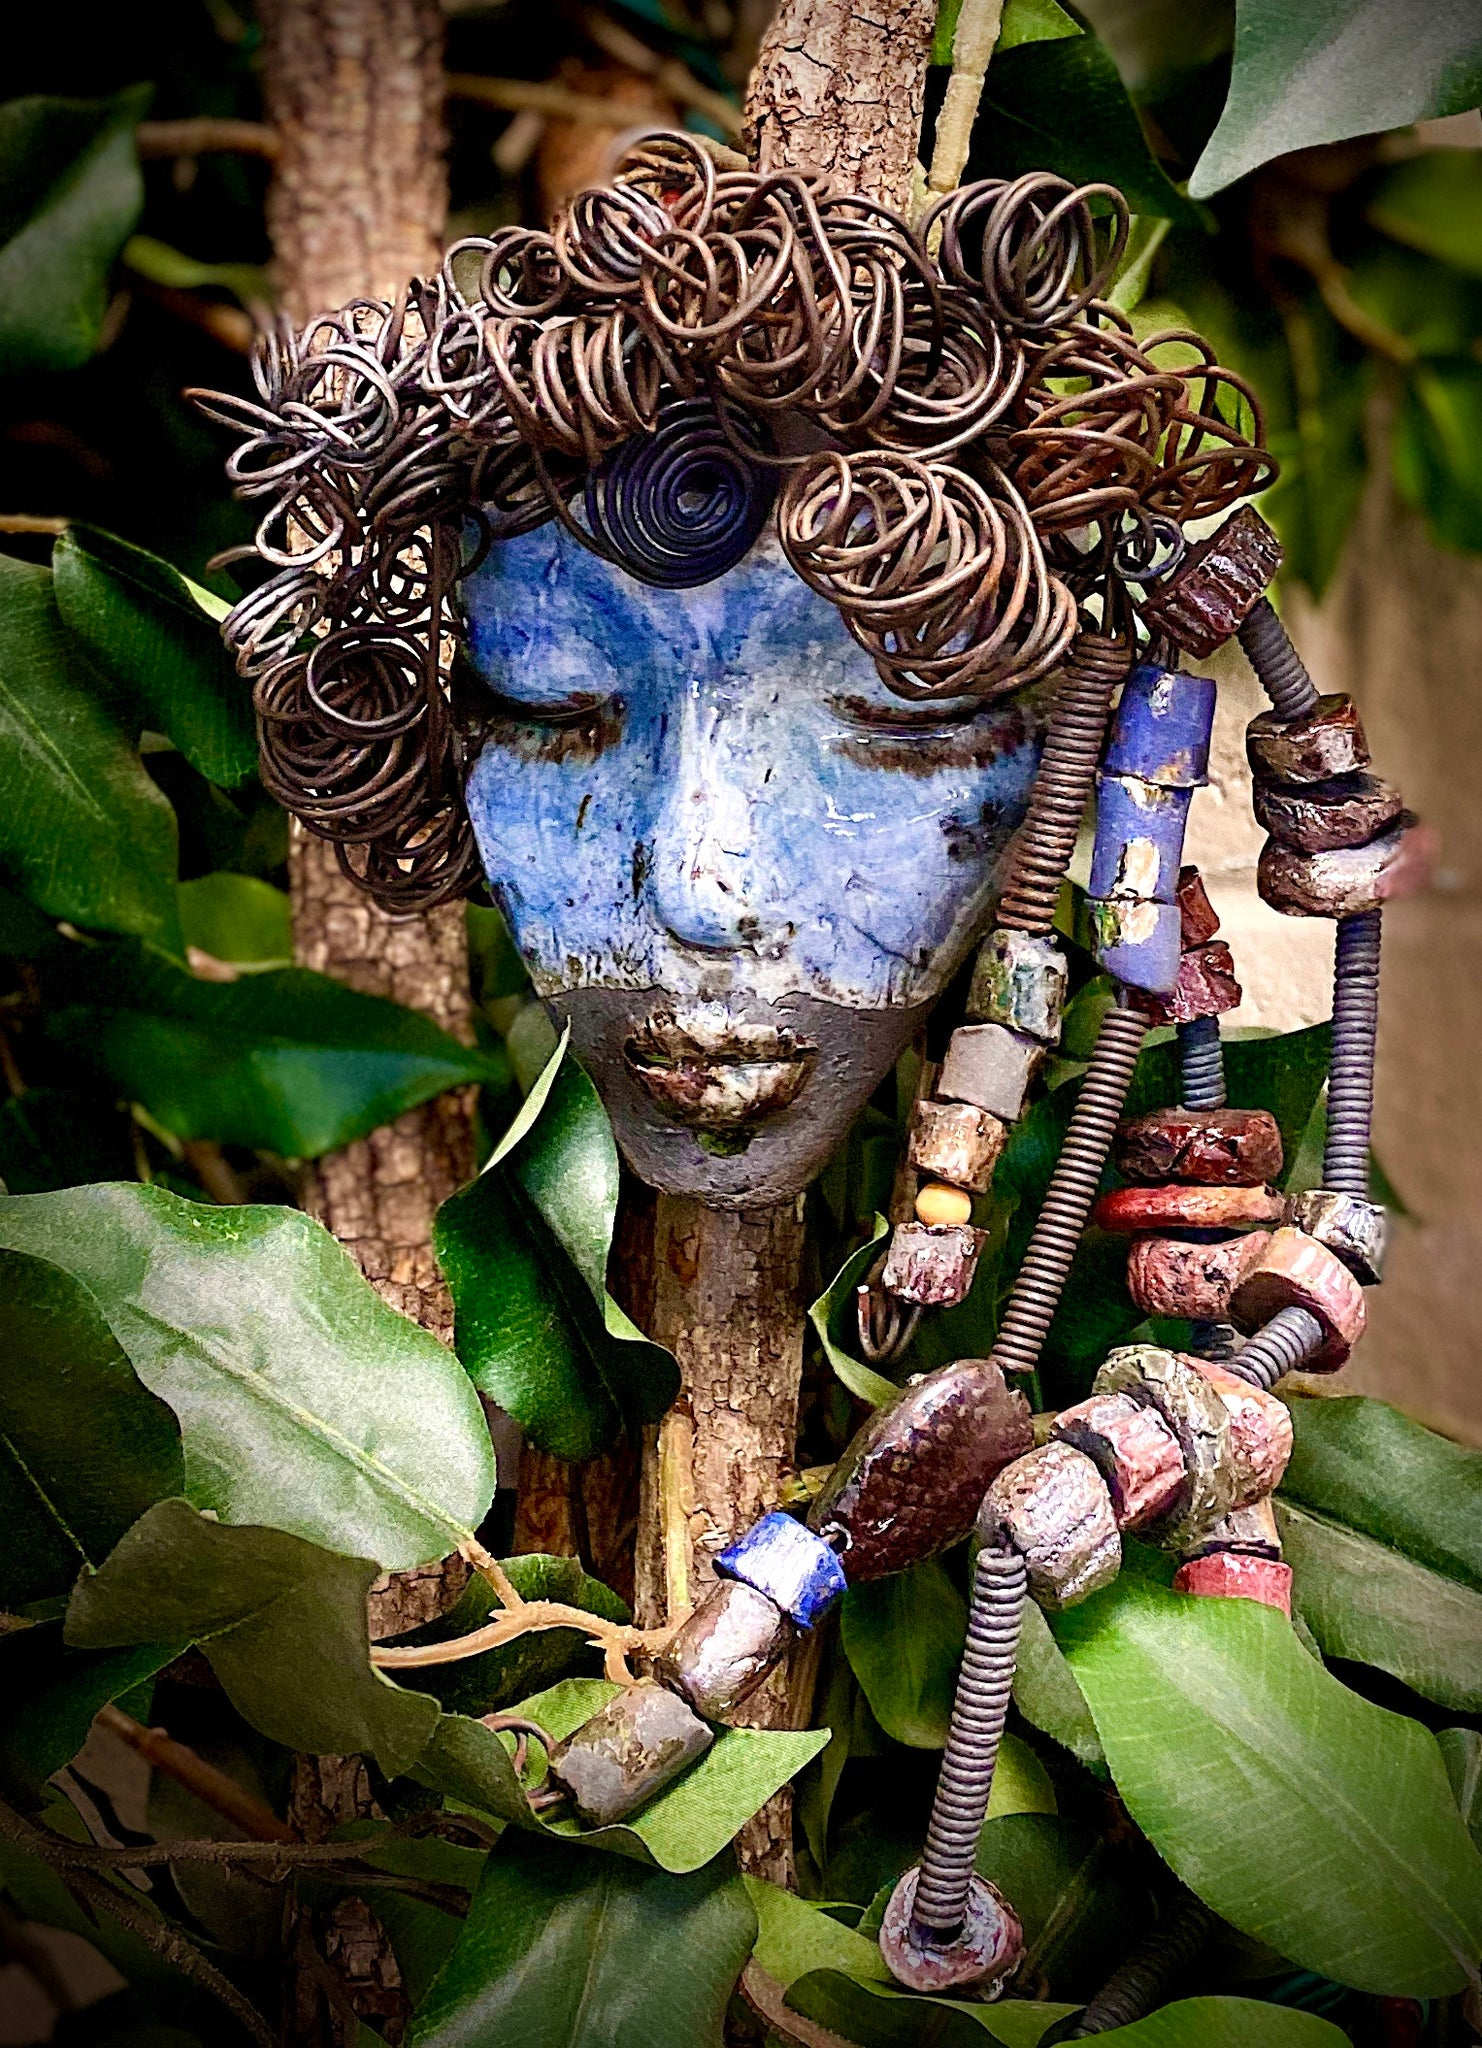 "Sky has a light blue complexion and off white lips! She is 7""x 5"""" and weighs 1.7 lbs. Sky has over 20 handmade raku fired beads. She has over 20 feet of coiled 16 gauge wire hair."